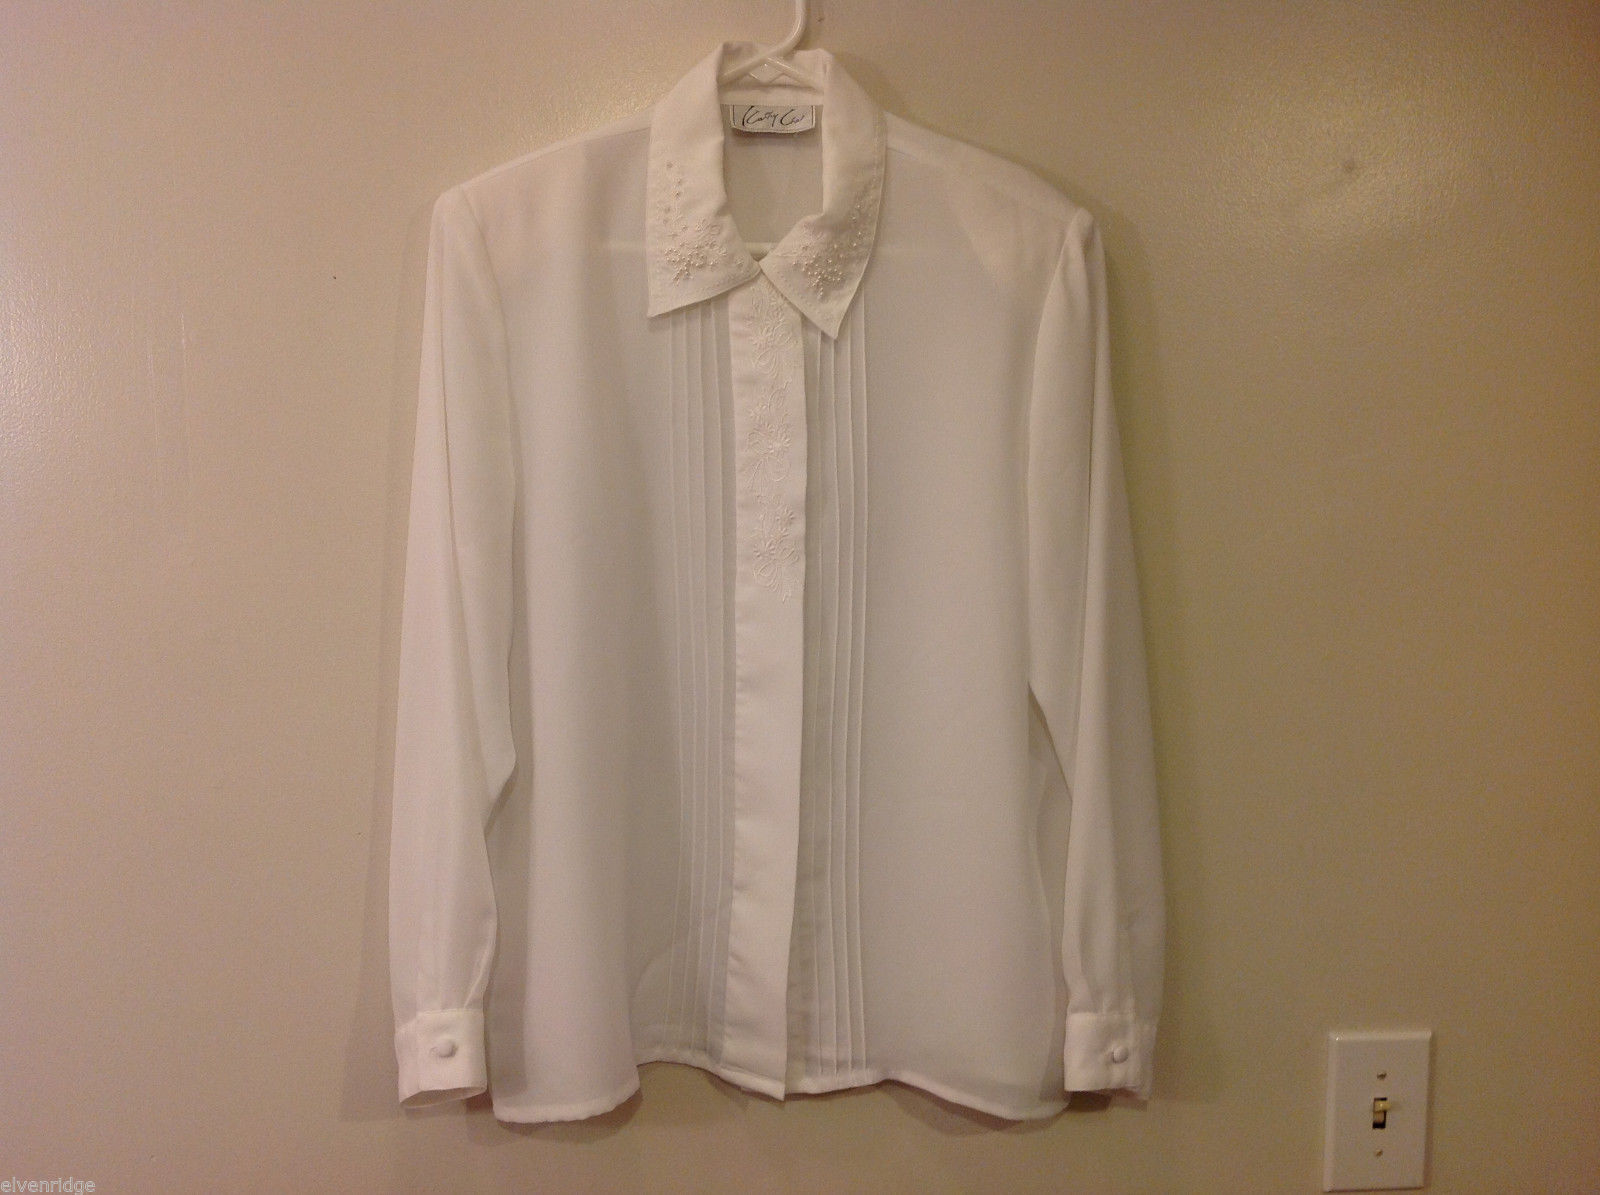 Kathy Che Women's Size 14 Blouse Pintuck White Shirt w/ Embroidery & Pearl Beads